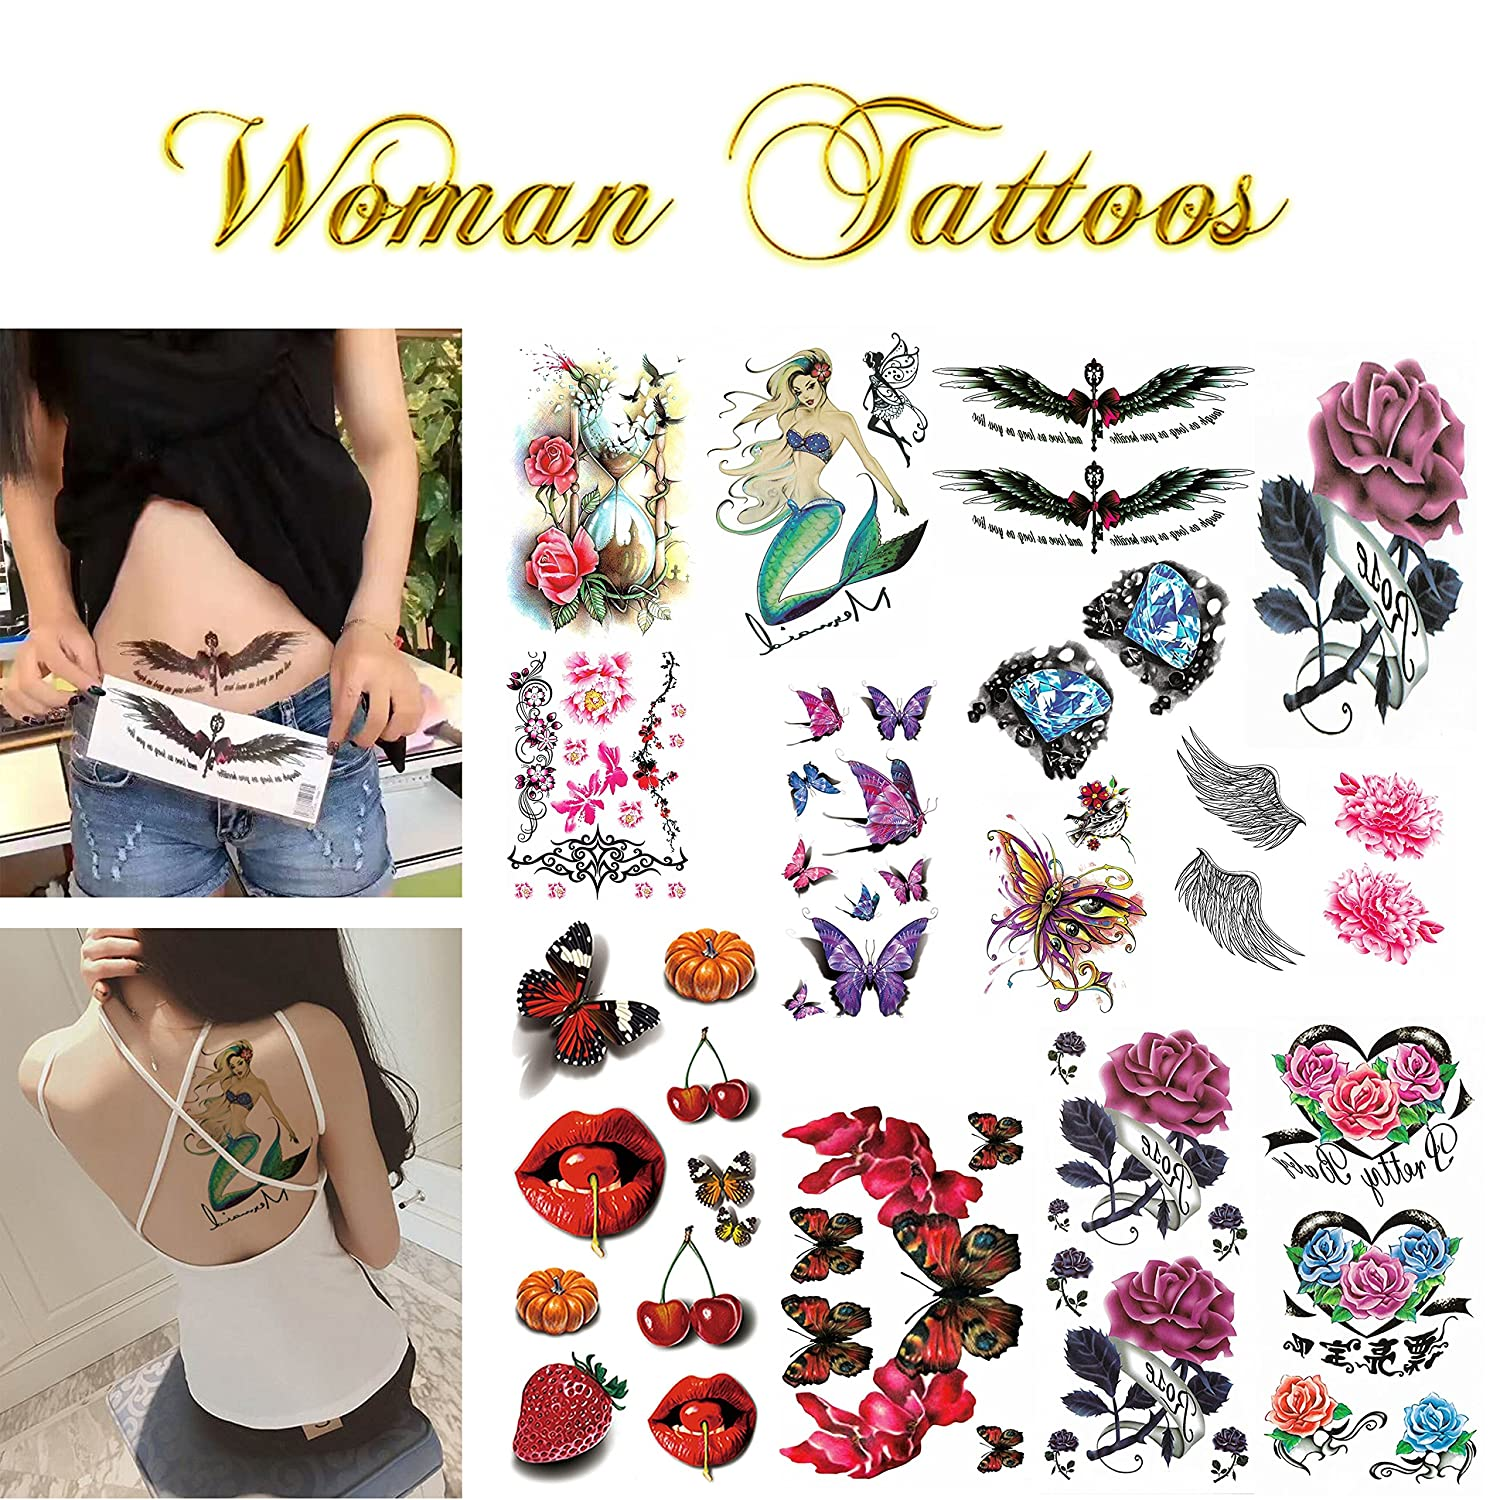 c85ec2ec3 Amazon.com: Realistic Ink Temporary Tattoos Kit- for Woman and Girls- 16  Colorful Sheets by Companion Company: Health & Personal Care